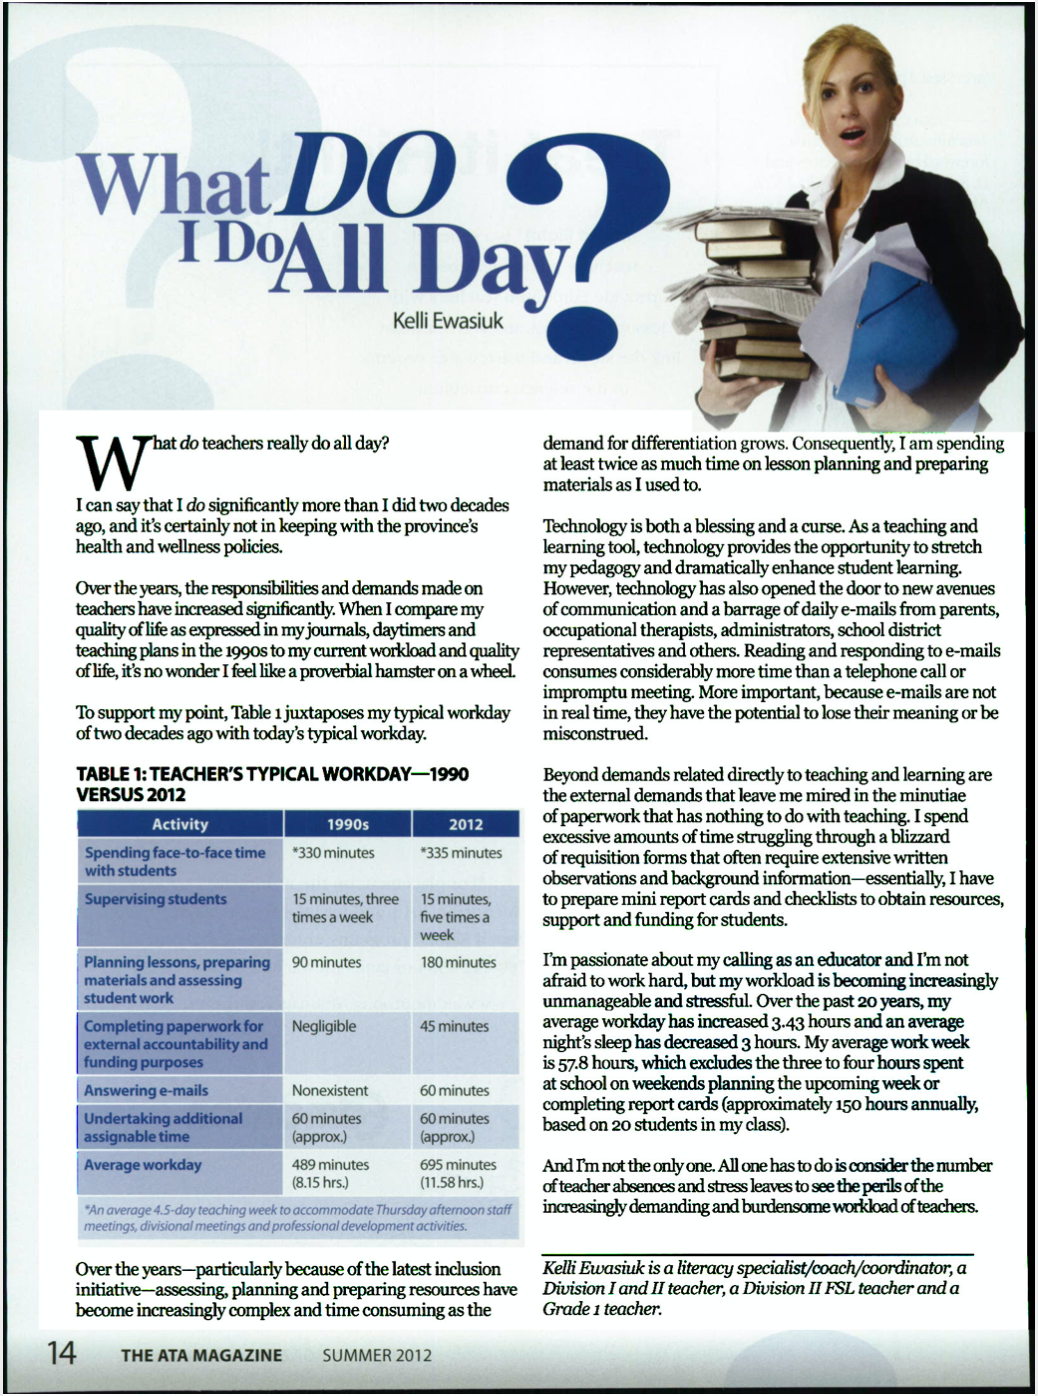 "ATA magazine article from Summer 2020 by Kelli Ewasiuk titled ""What Do I Do All Day?"" The image shows the article text, table of teacher activities per day, and image of frazzled teacher juggling stacks of books and papers."